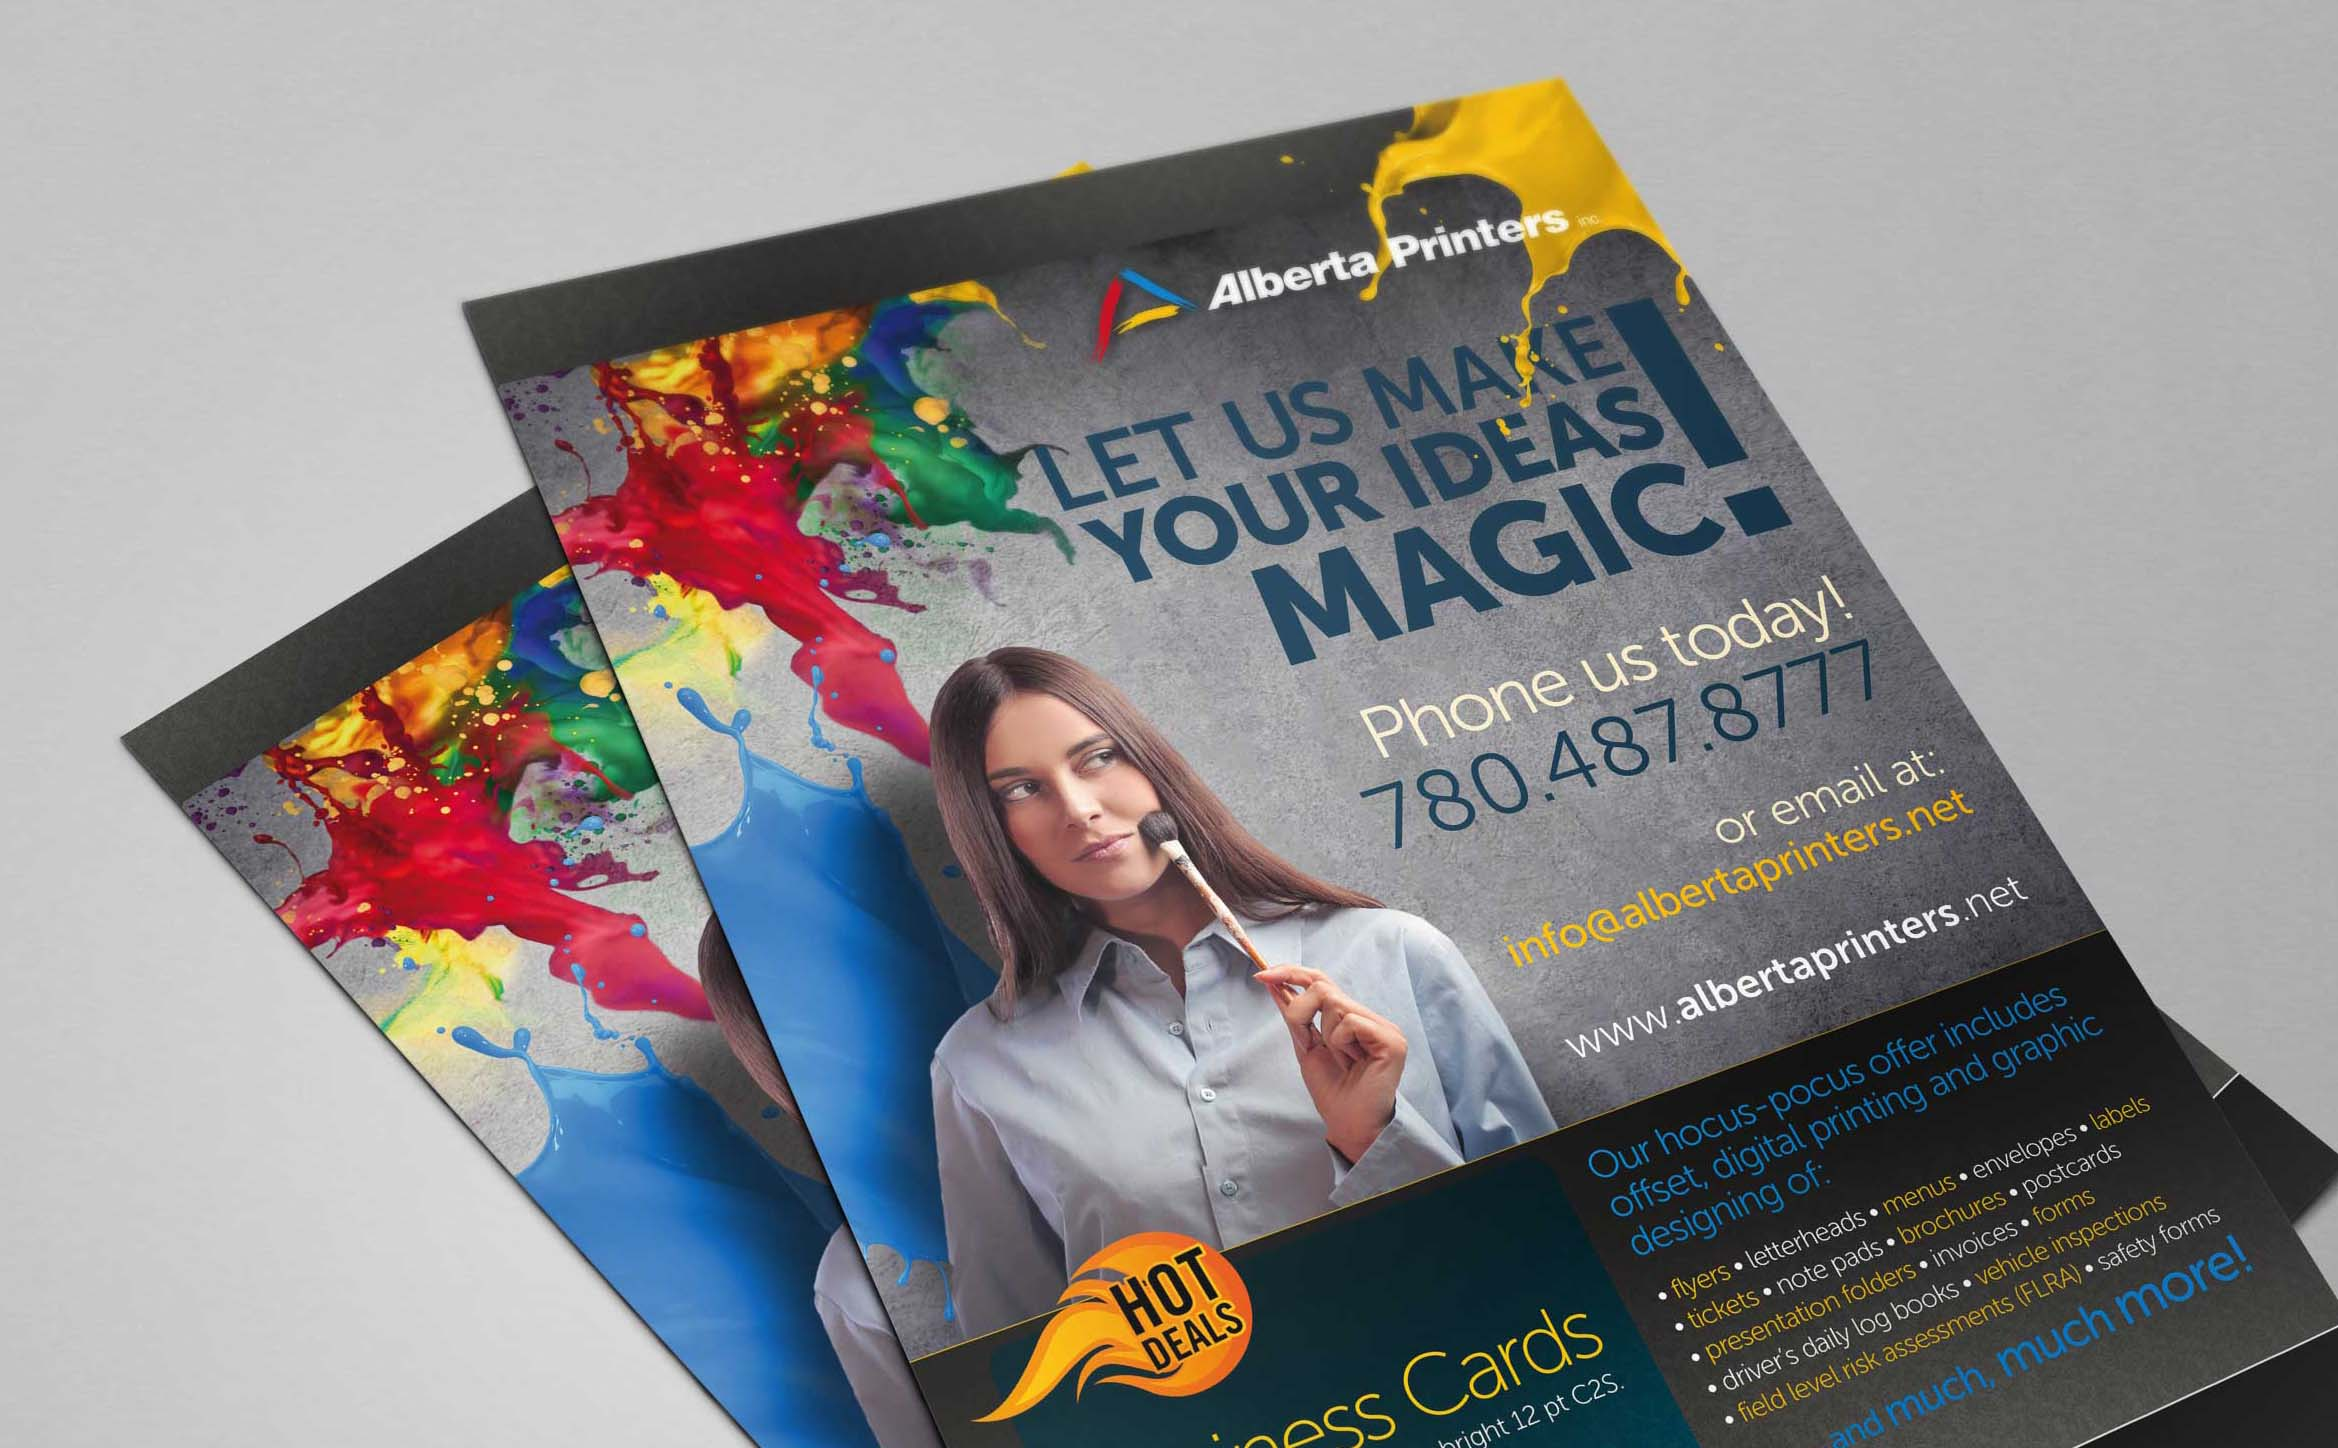 Two flyers printing samples at Alberta Printers